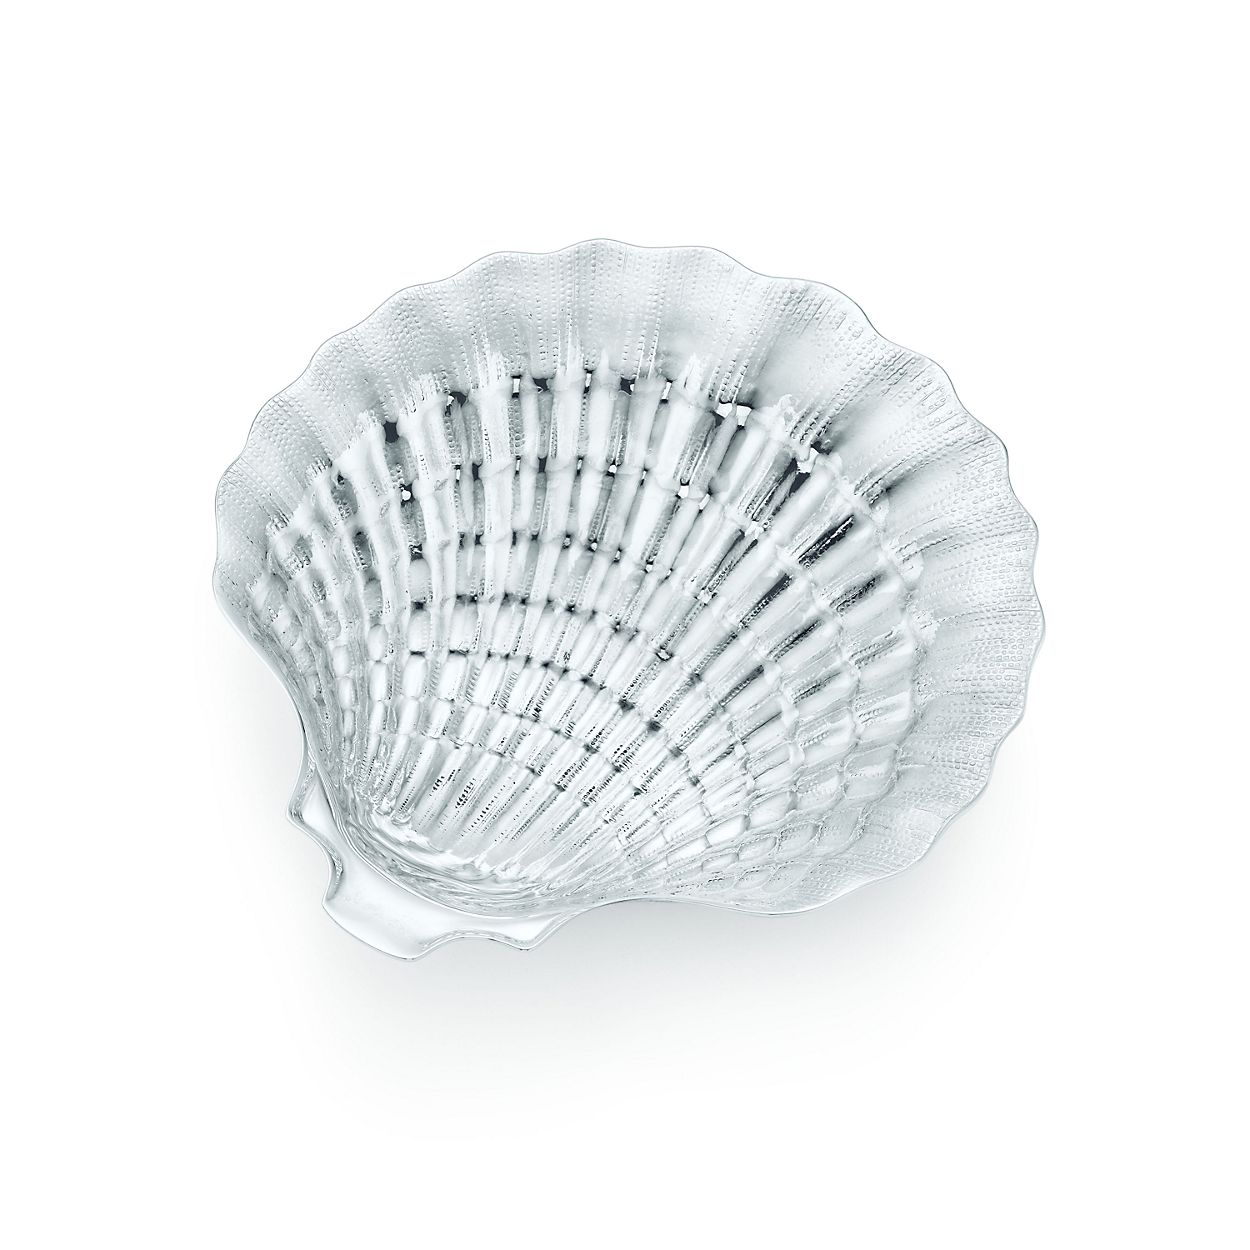 Scallop shell dish in sterling silver tiffany co scallop shell dish scallop shell dish biocorpaavc Image collections